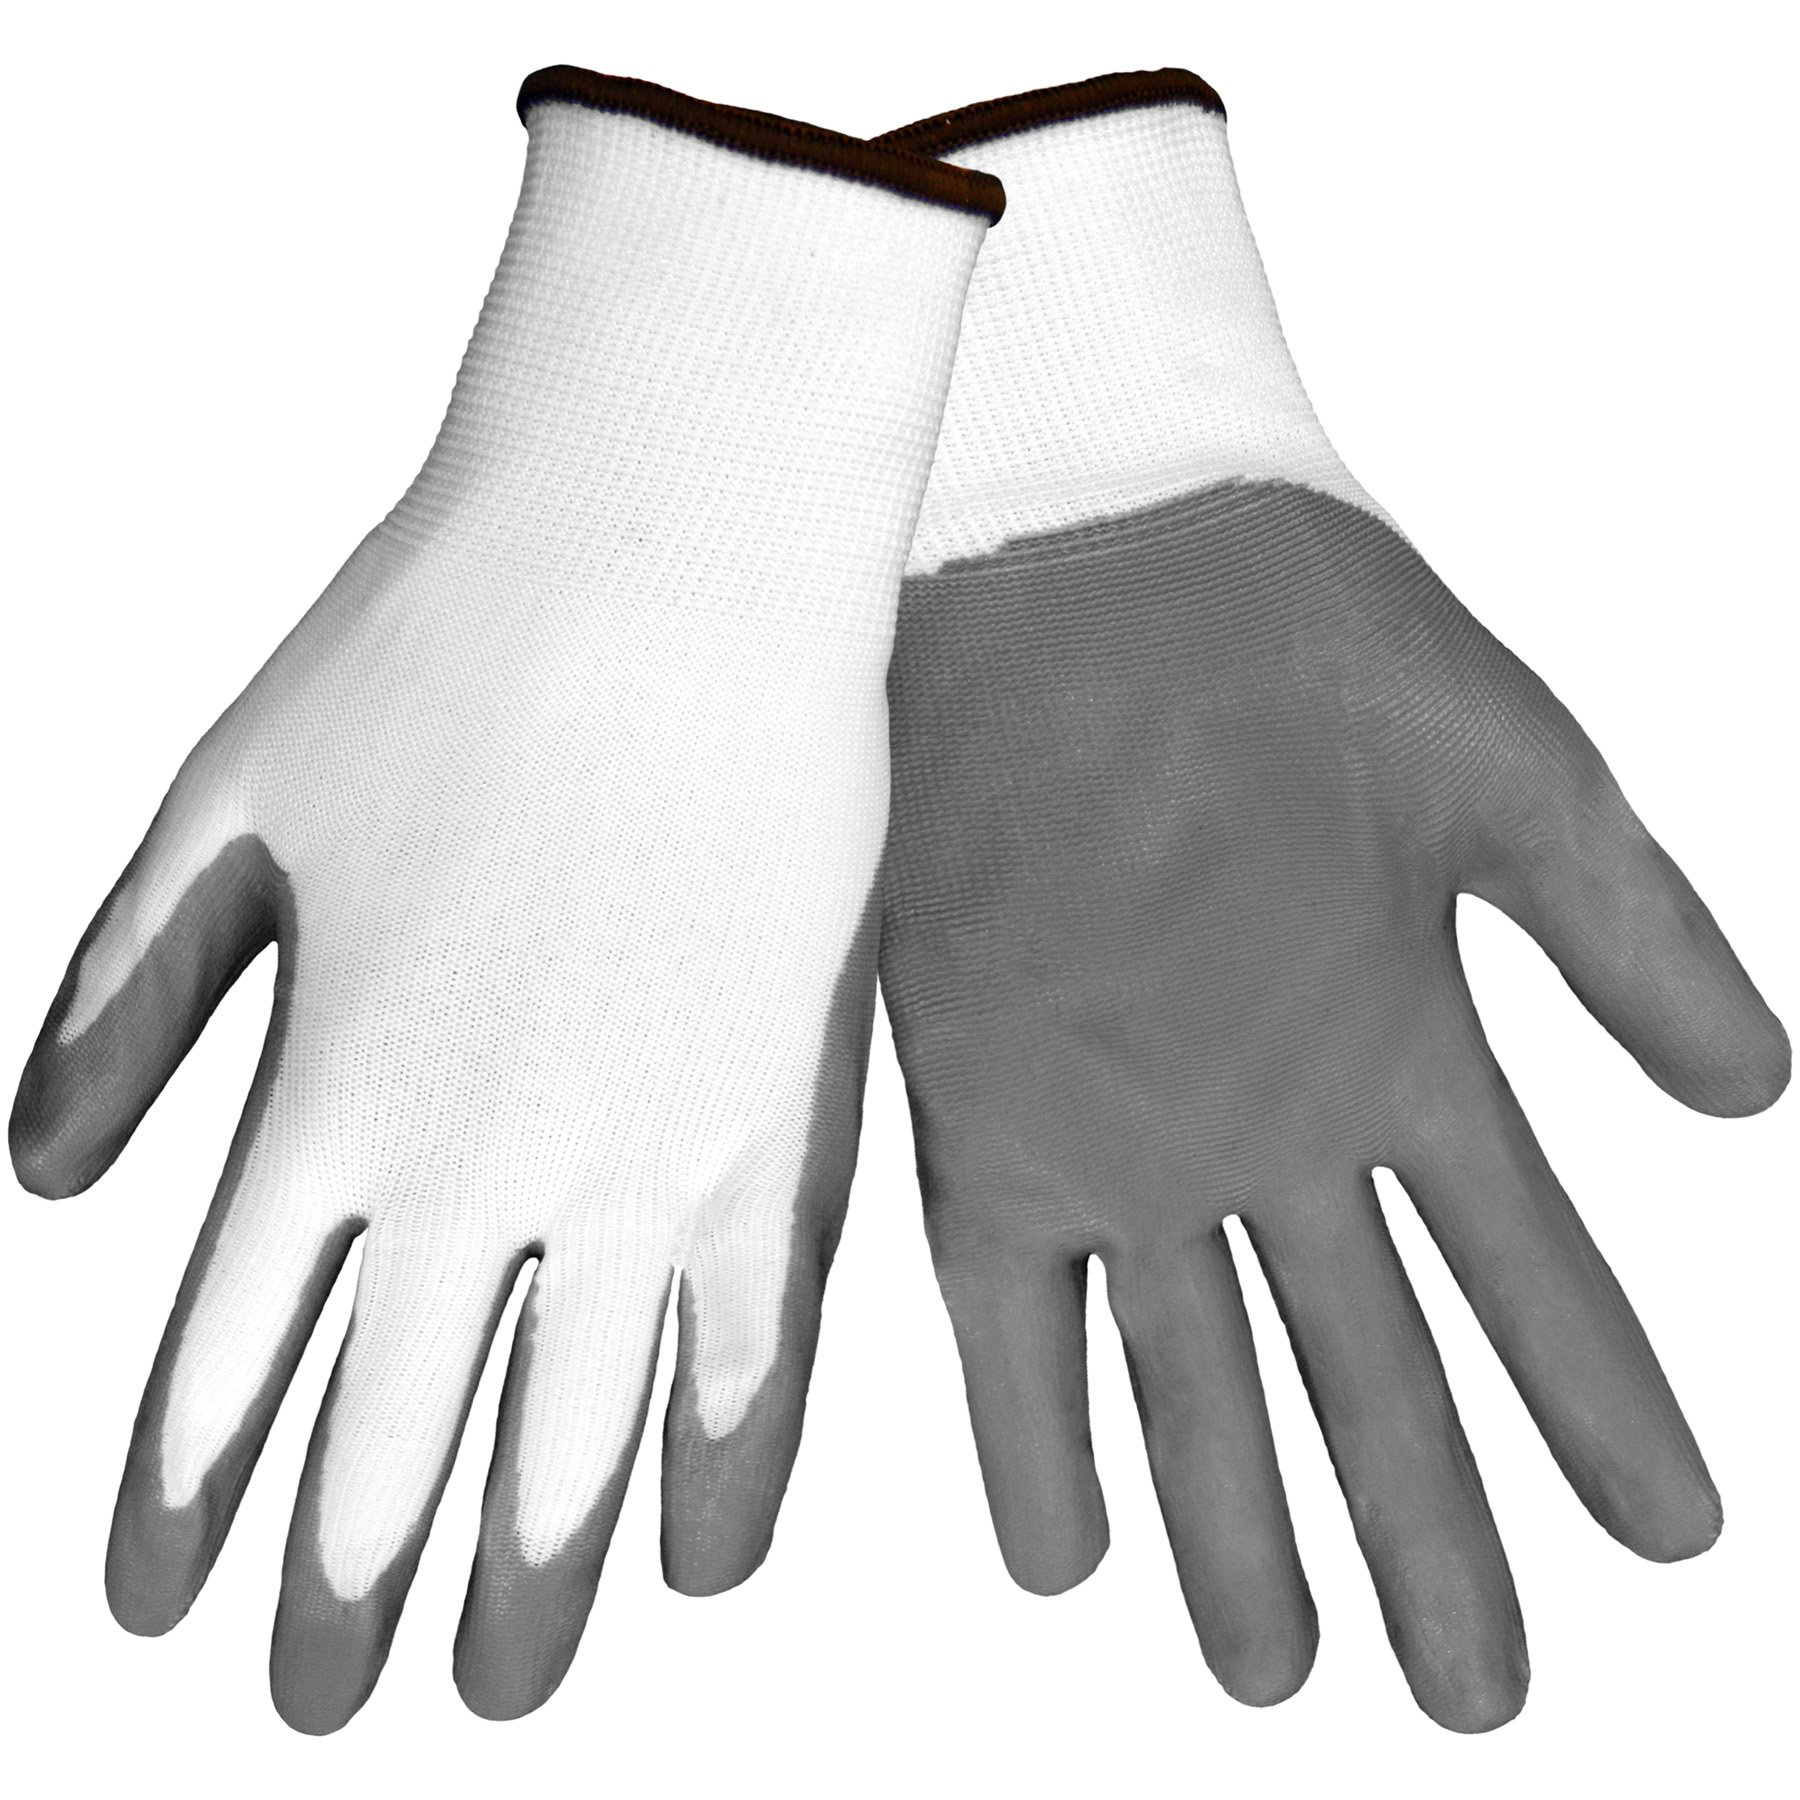 Global Glove 550E Gripster Economy Ultra Light Nitrile Glove with Knit Wrist Liner, Work, Extra Large, Gray/White (Case of 72)